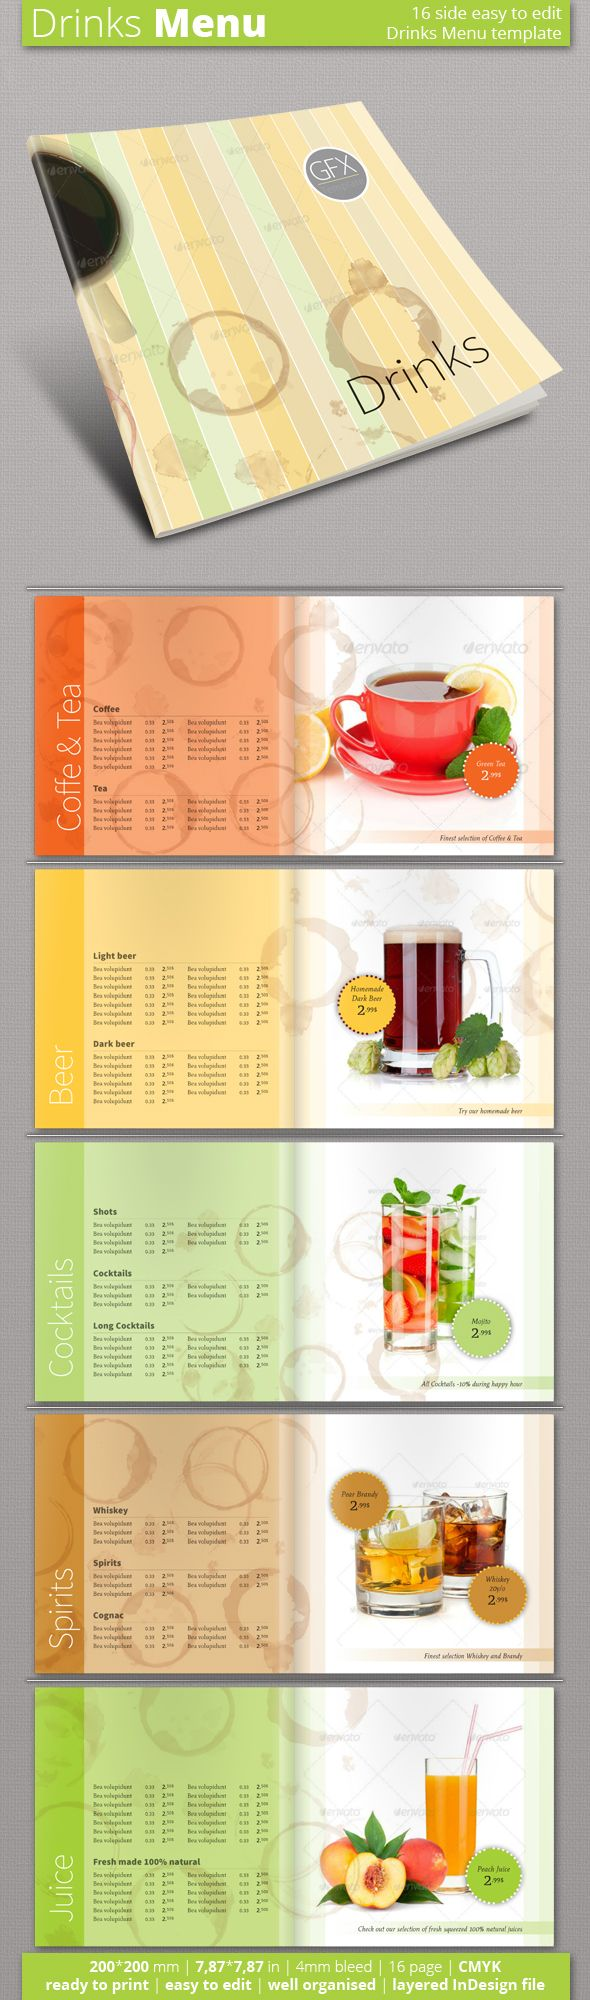 Best Menu Template Images On   Menu Templates Cafe